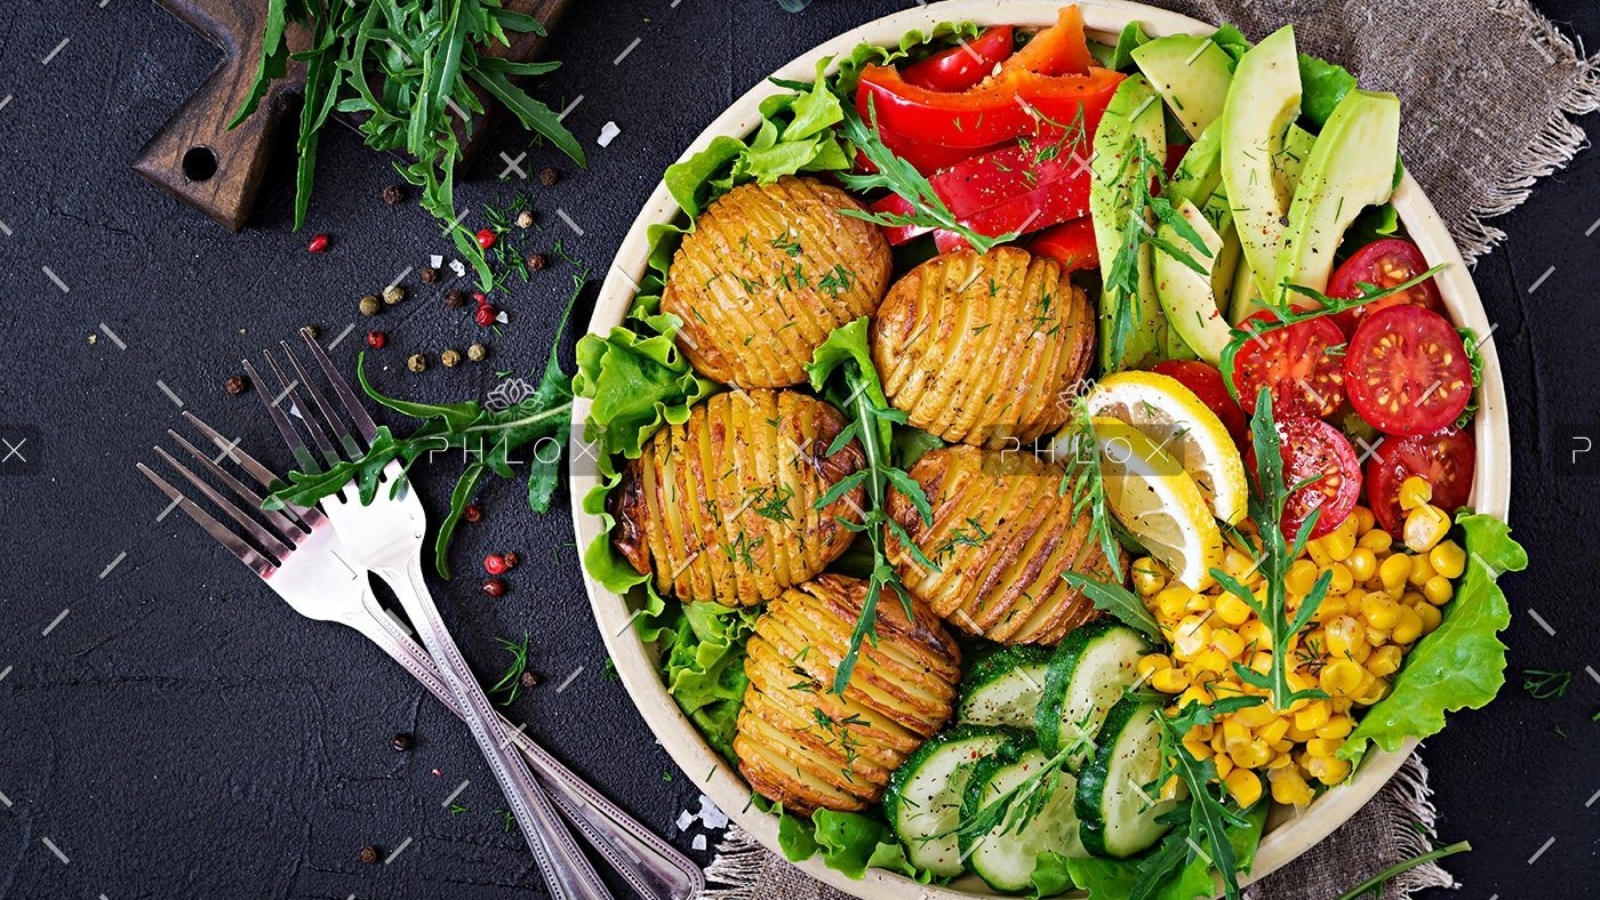 demo-attachment-17-vegetarian-buddha-bowl-raw-vegetables-and-baked-KAYZM53